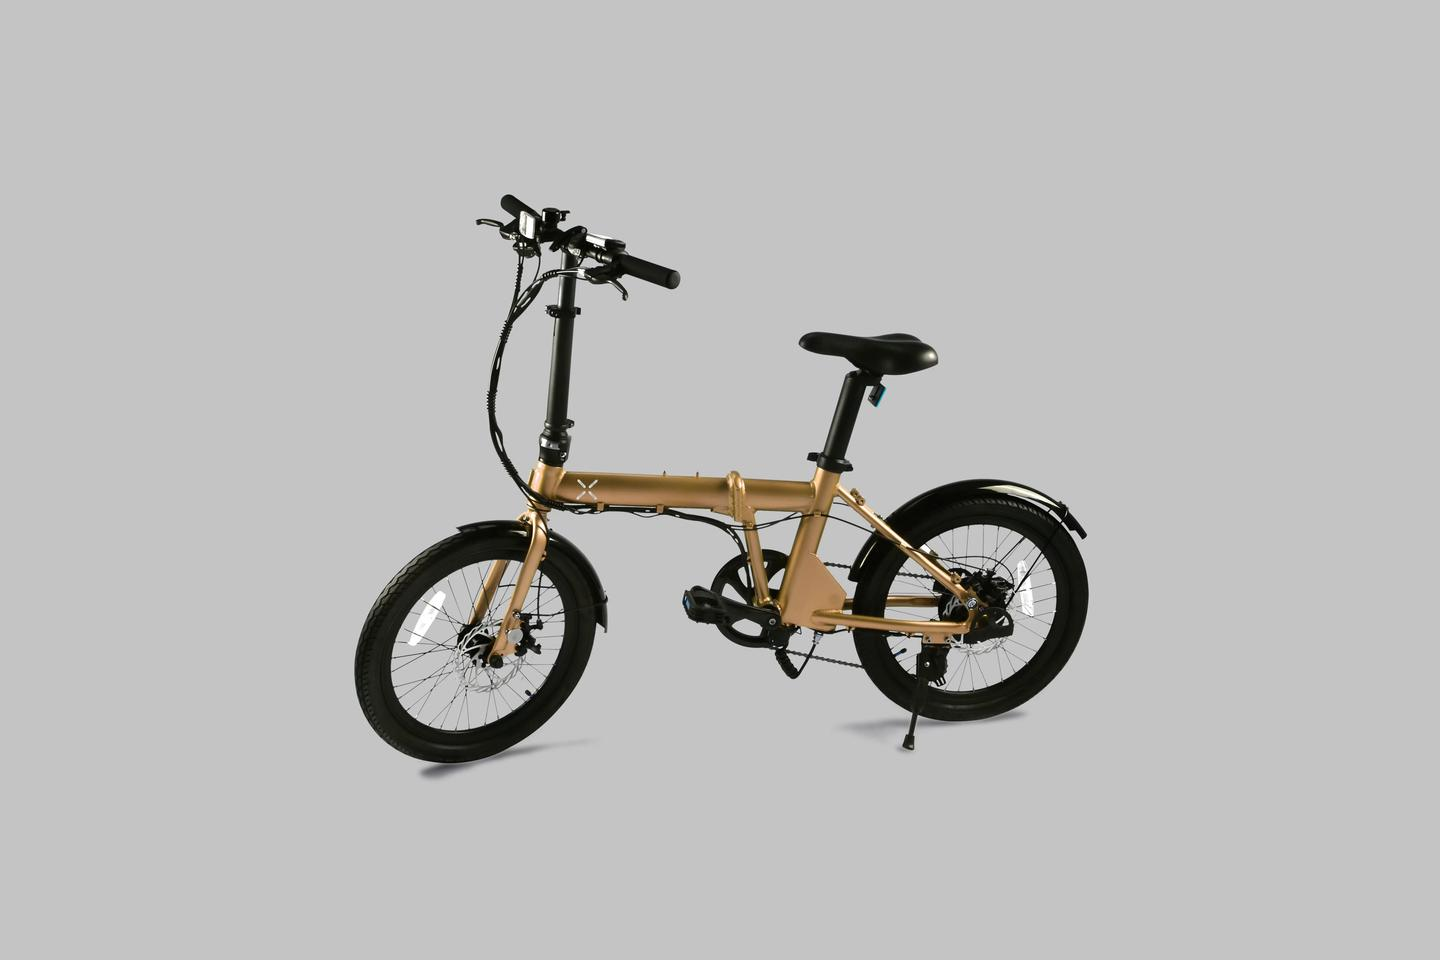 The H1 folding ebike is quoted as having a top speed of 15 mph